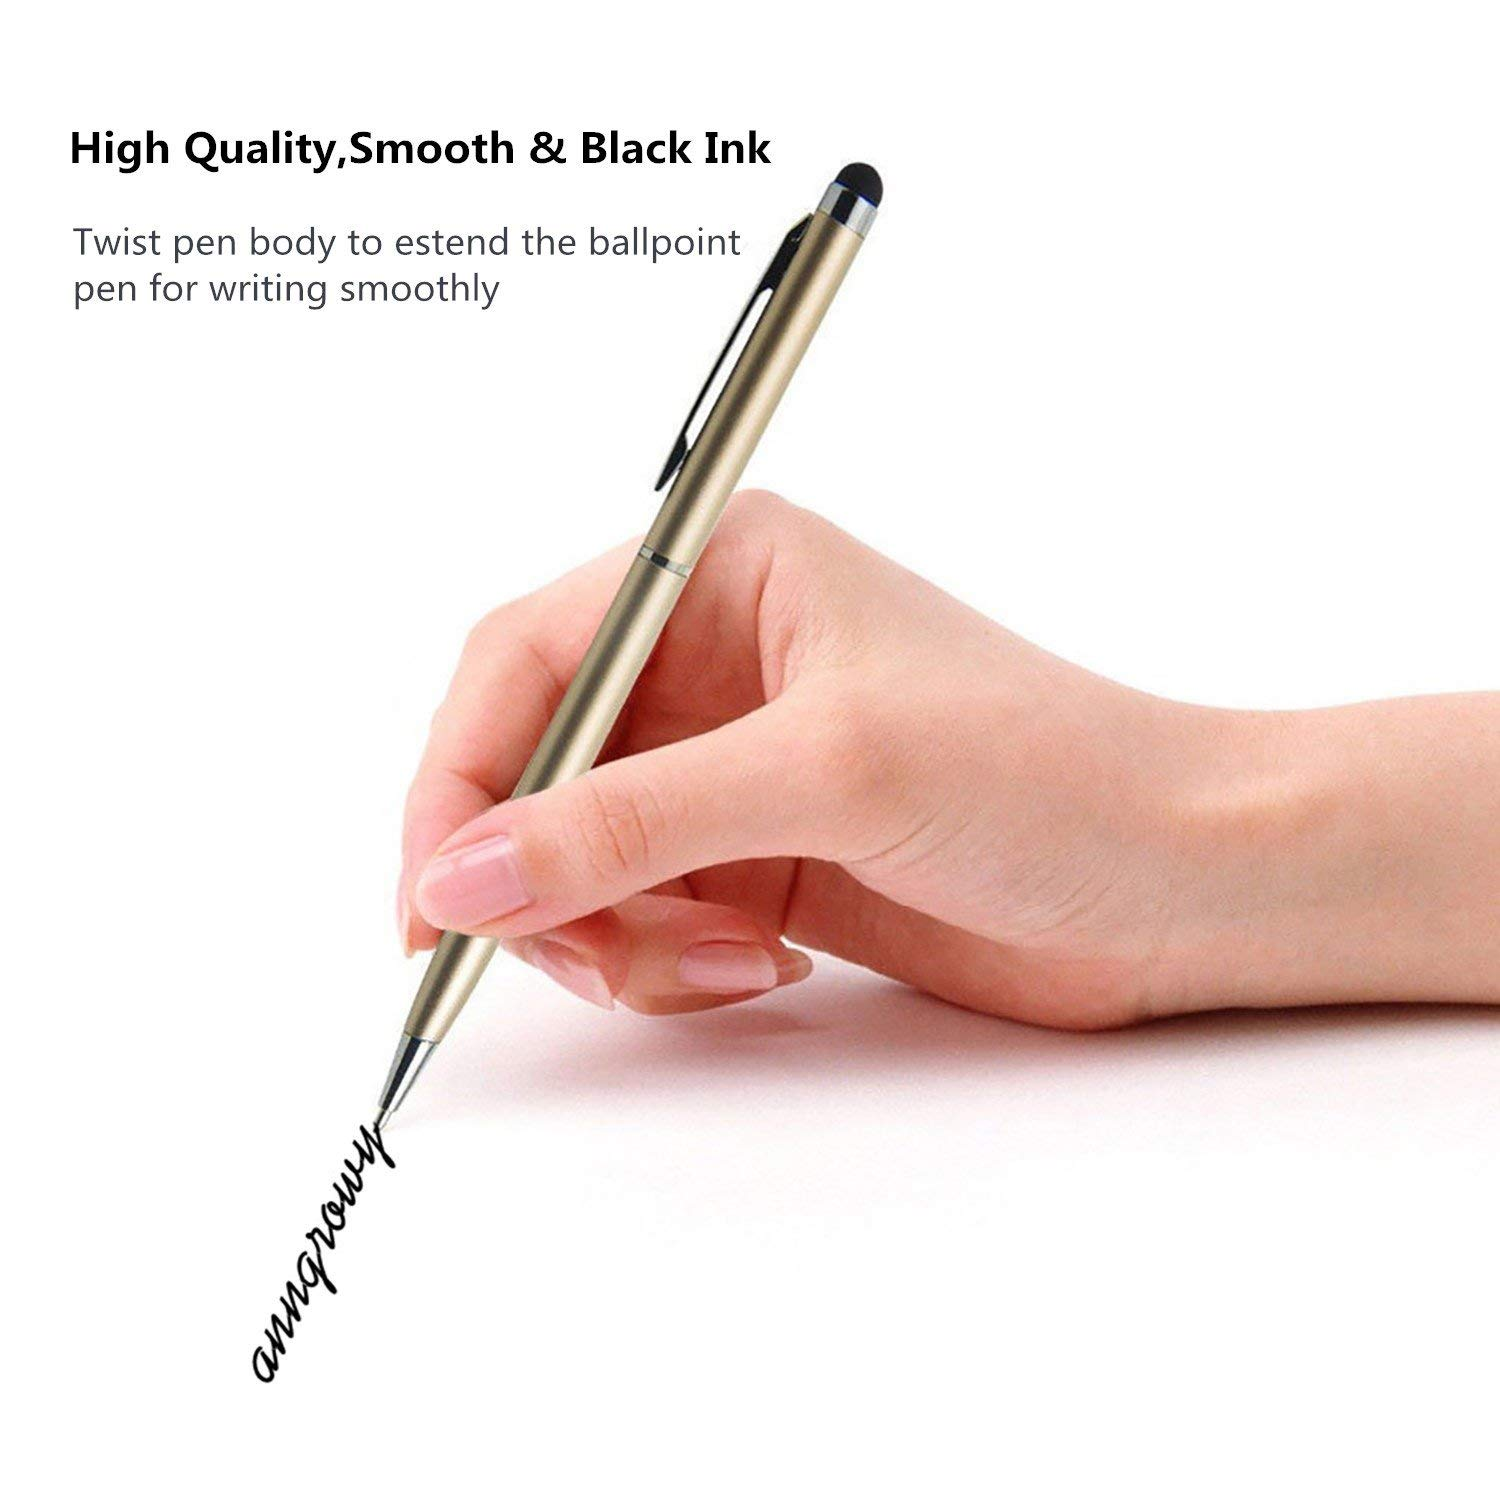 20pcs Stylus Pen Stylus Pens for Touch Screens Universal 2 in 1 Capacitive Stylus Ballpoint Pen Stylus for iPad Tablet Kindle Samsung Galaxy Phones